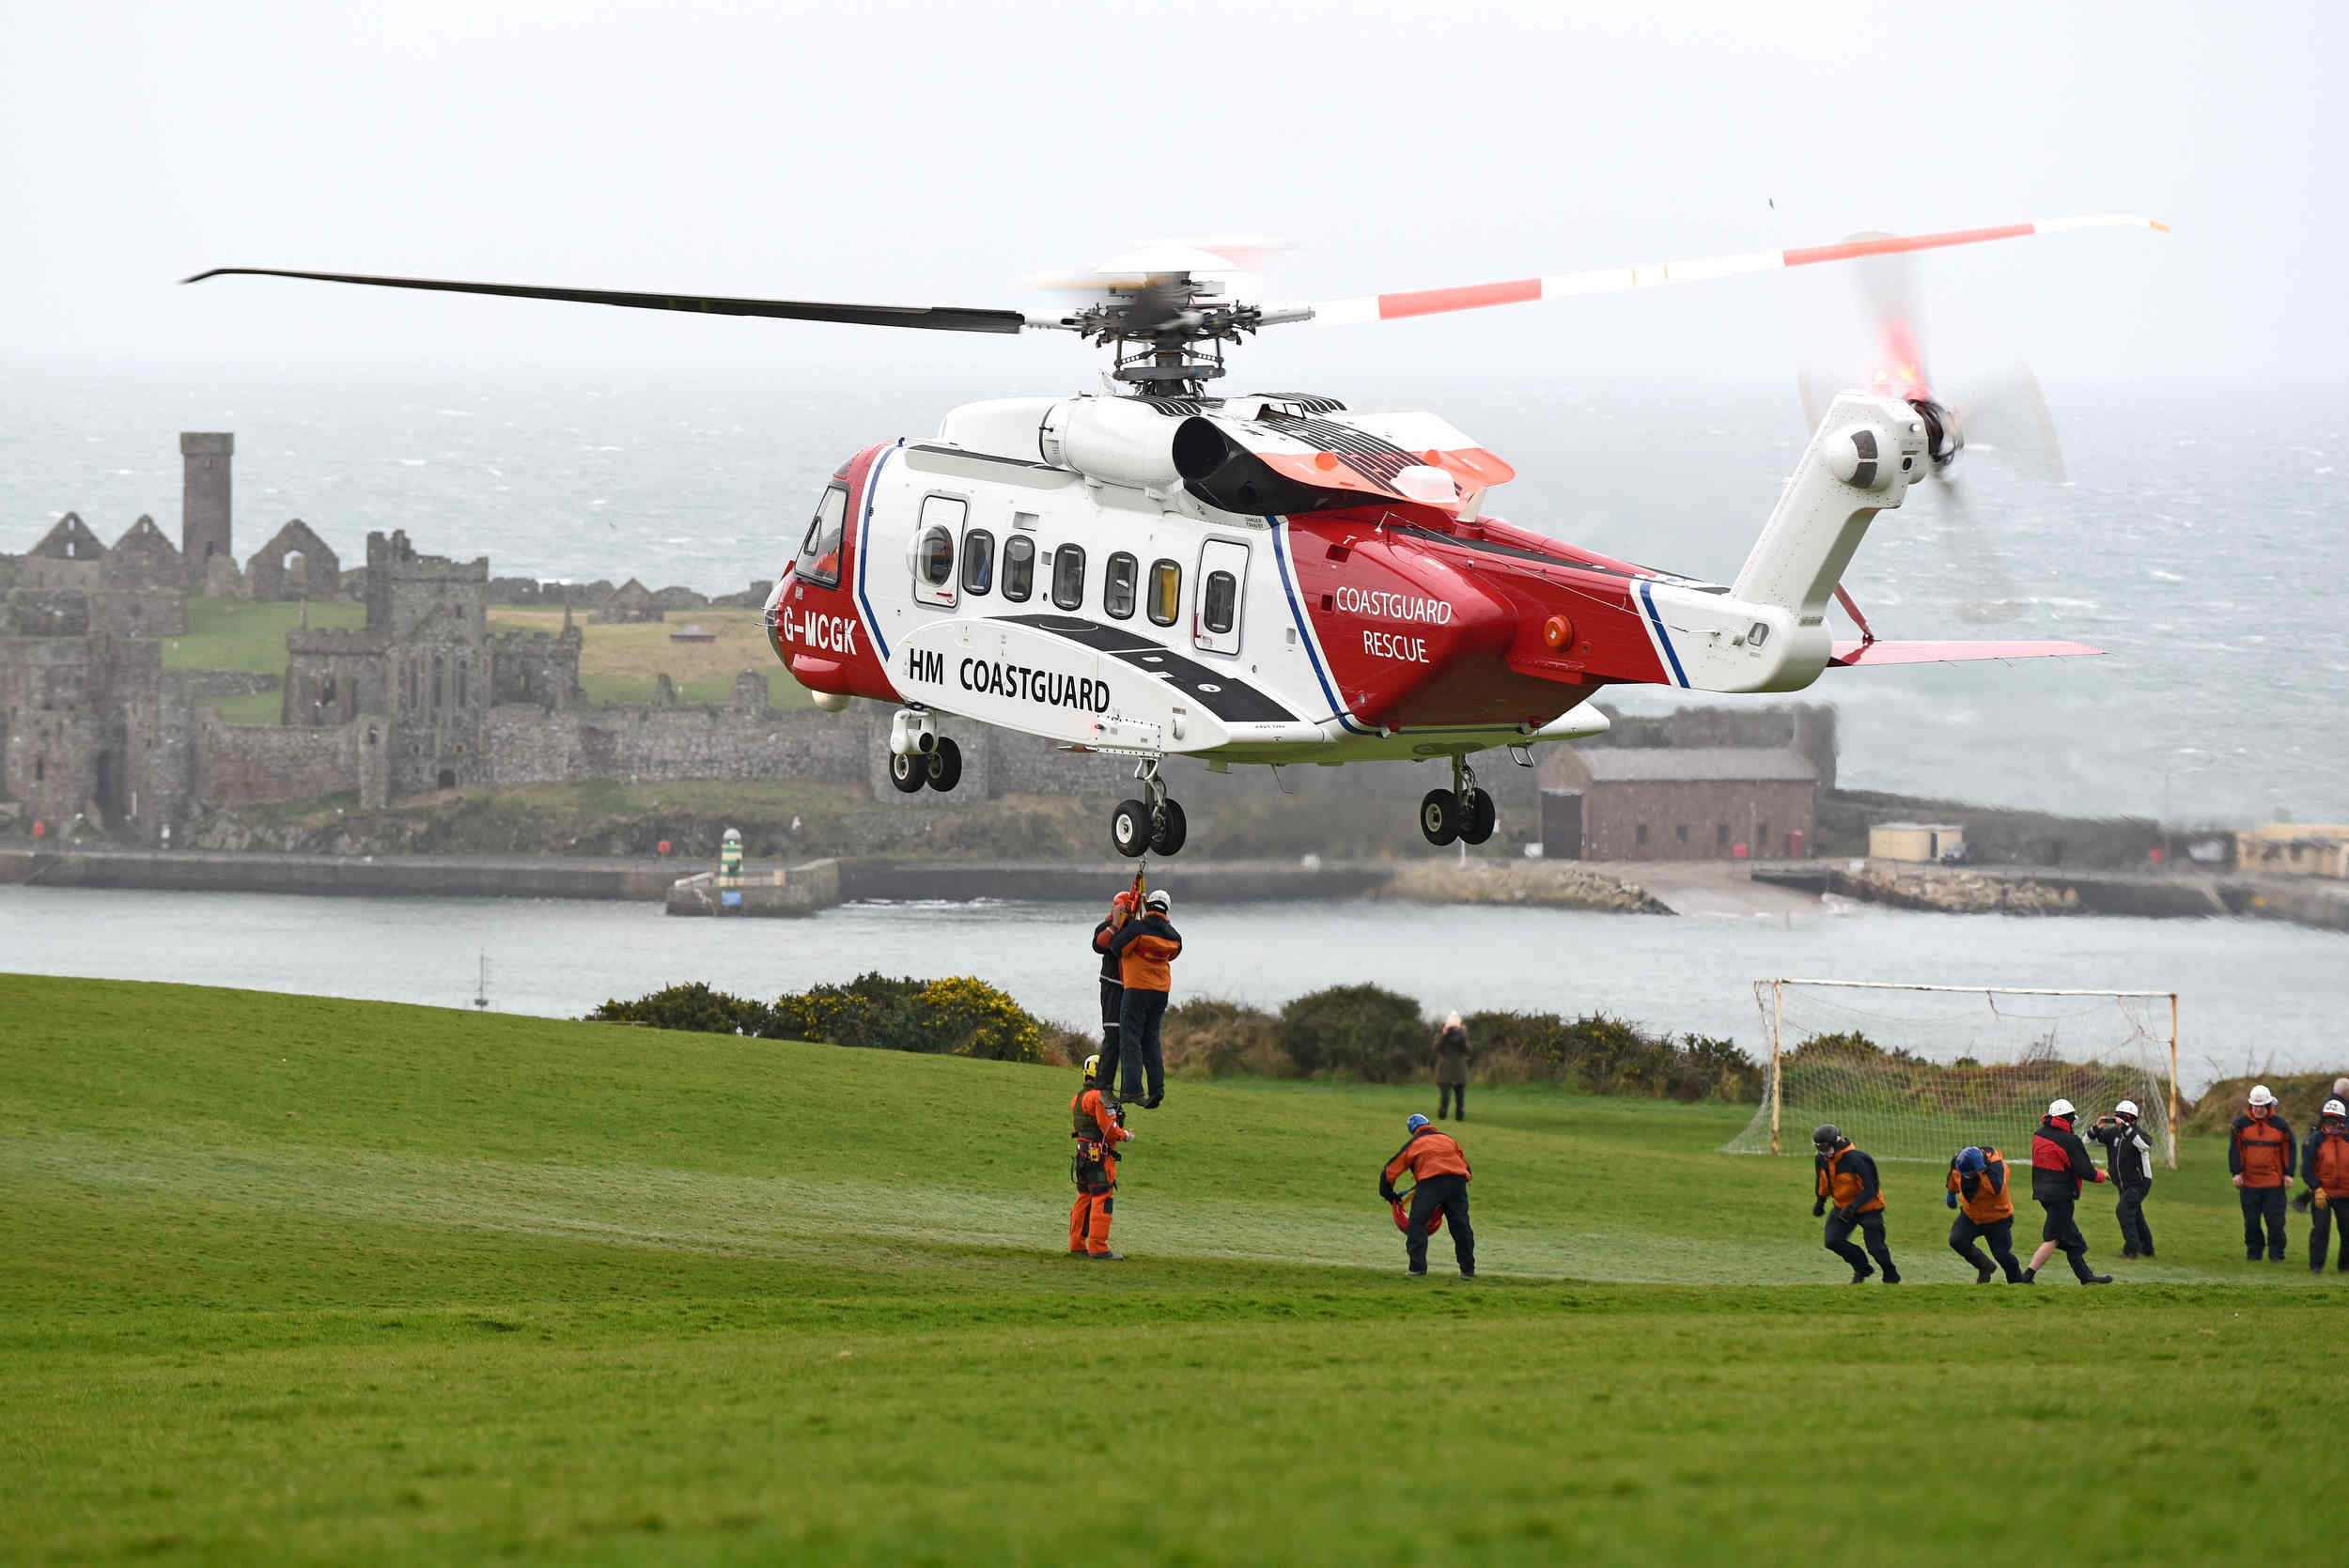 A coastguard helicopter takes part in an exercise with Civil Defence teams in Peel